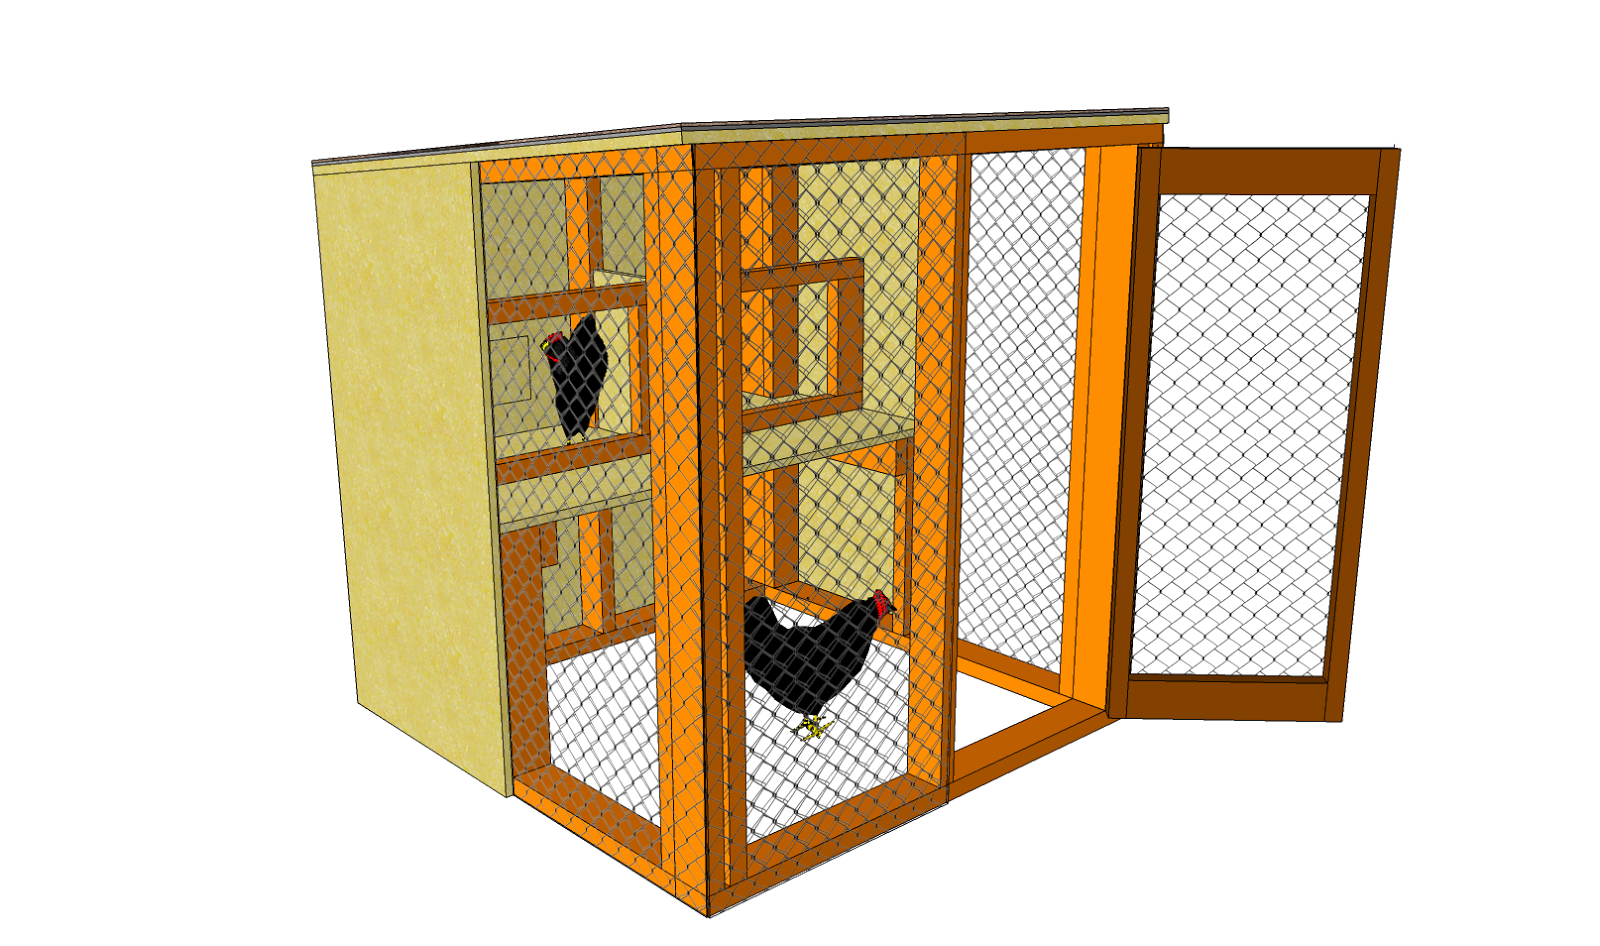 Building chicken coops chicken coop plans free download A frame blueprints